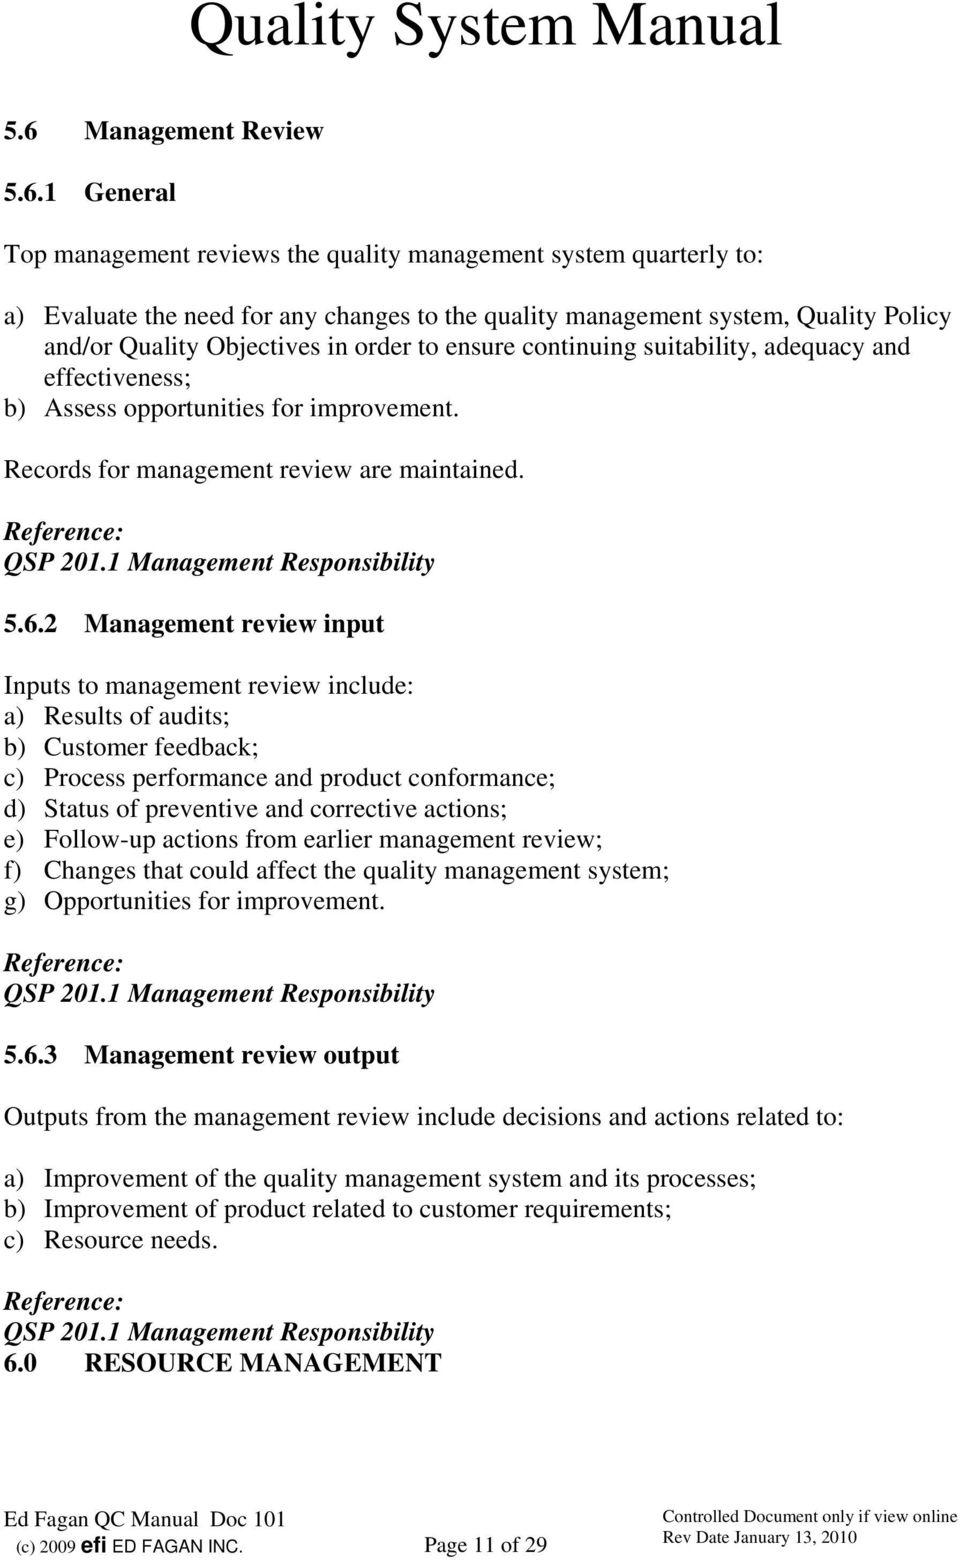 2 Management review input Inputs to management review include: a) Results of audits; b) Customer feedback; c) Process performance and product conformance; d) Status of preventive and corrective